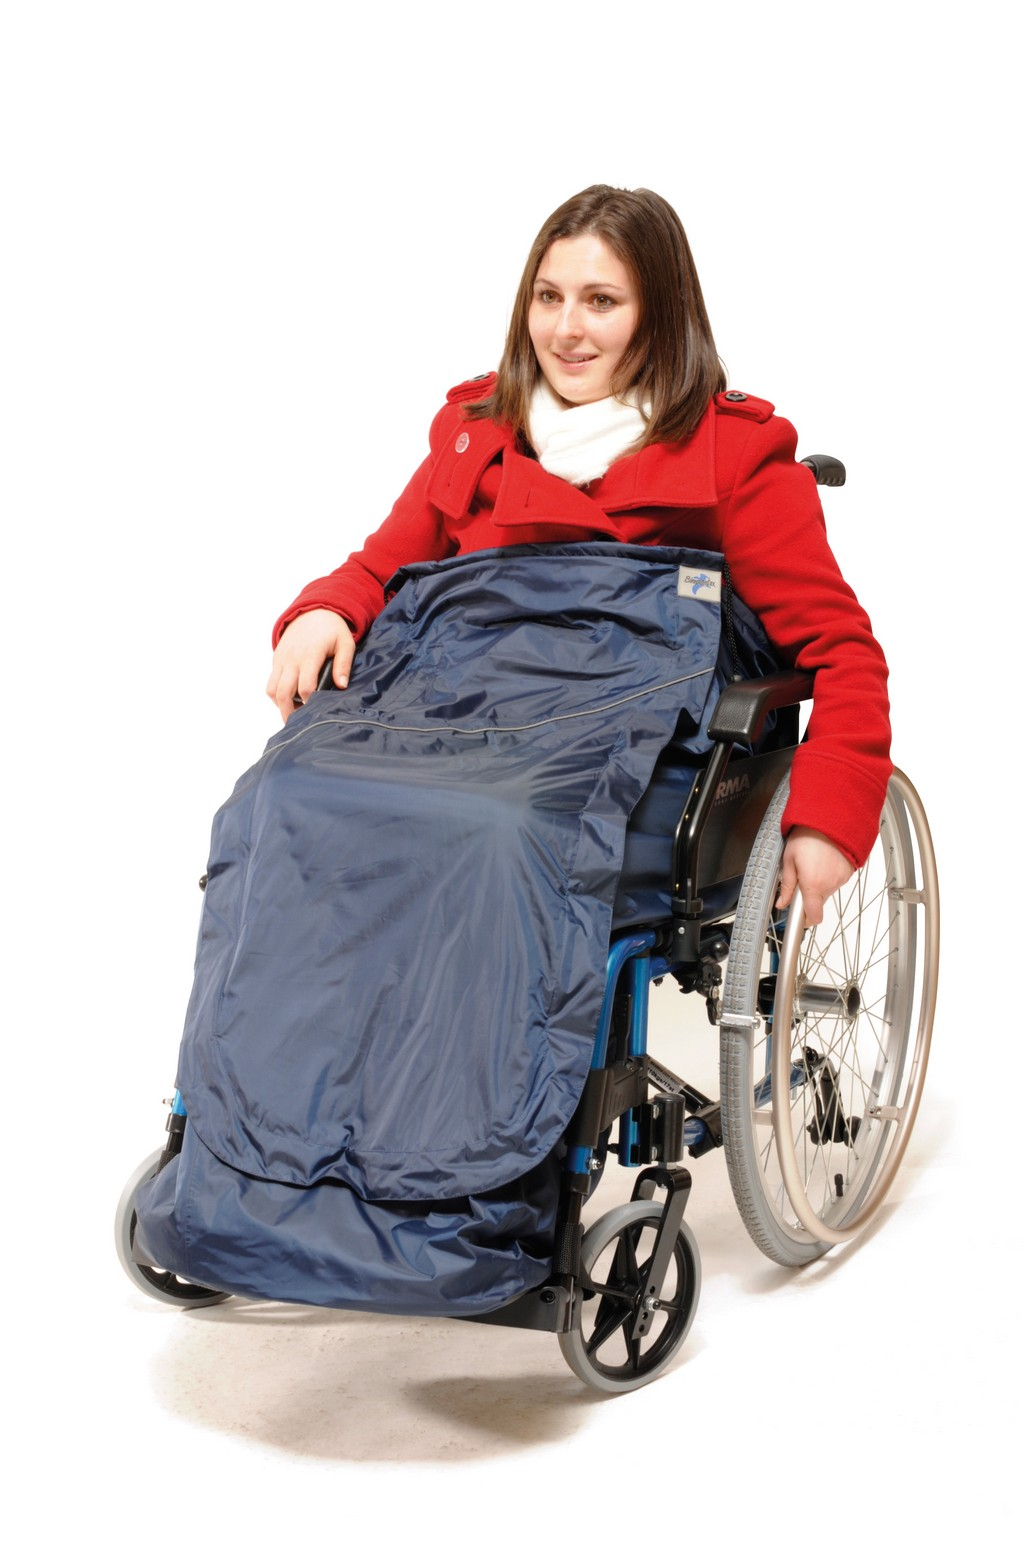 installing wheelchair tires, wheelchair tire covers, health lifting cushion, power wheelchair lights